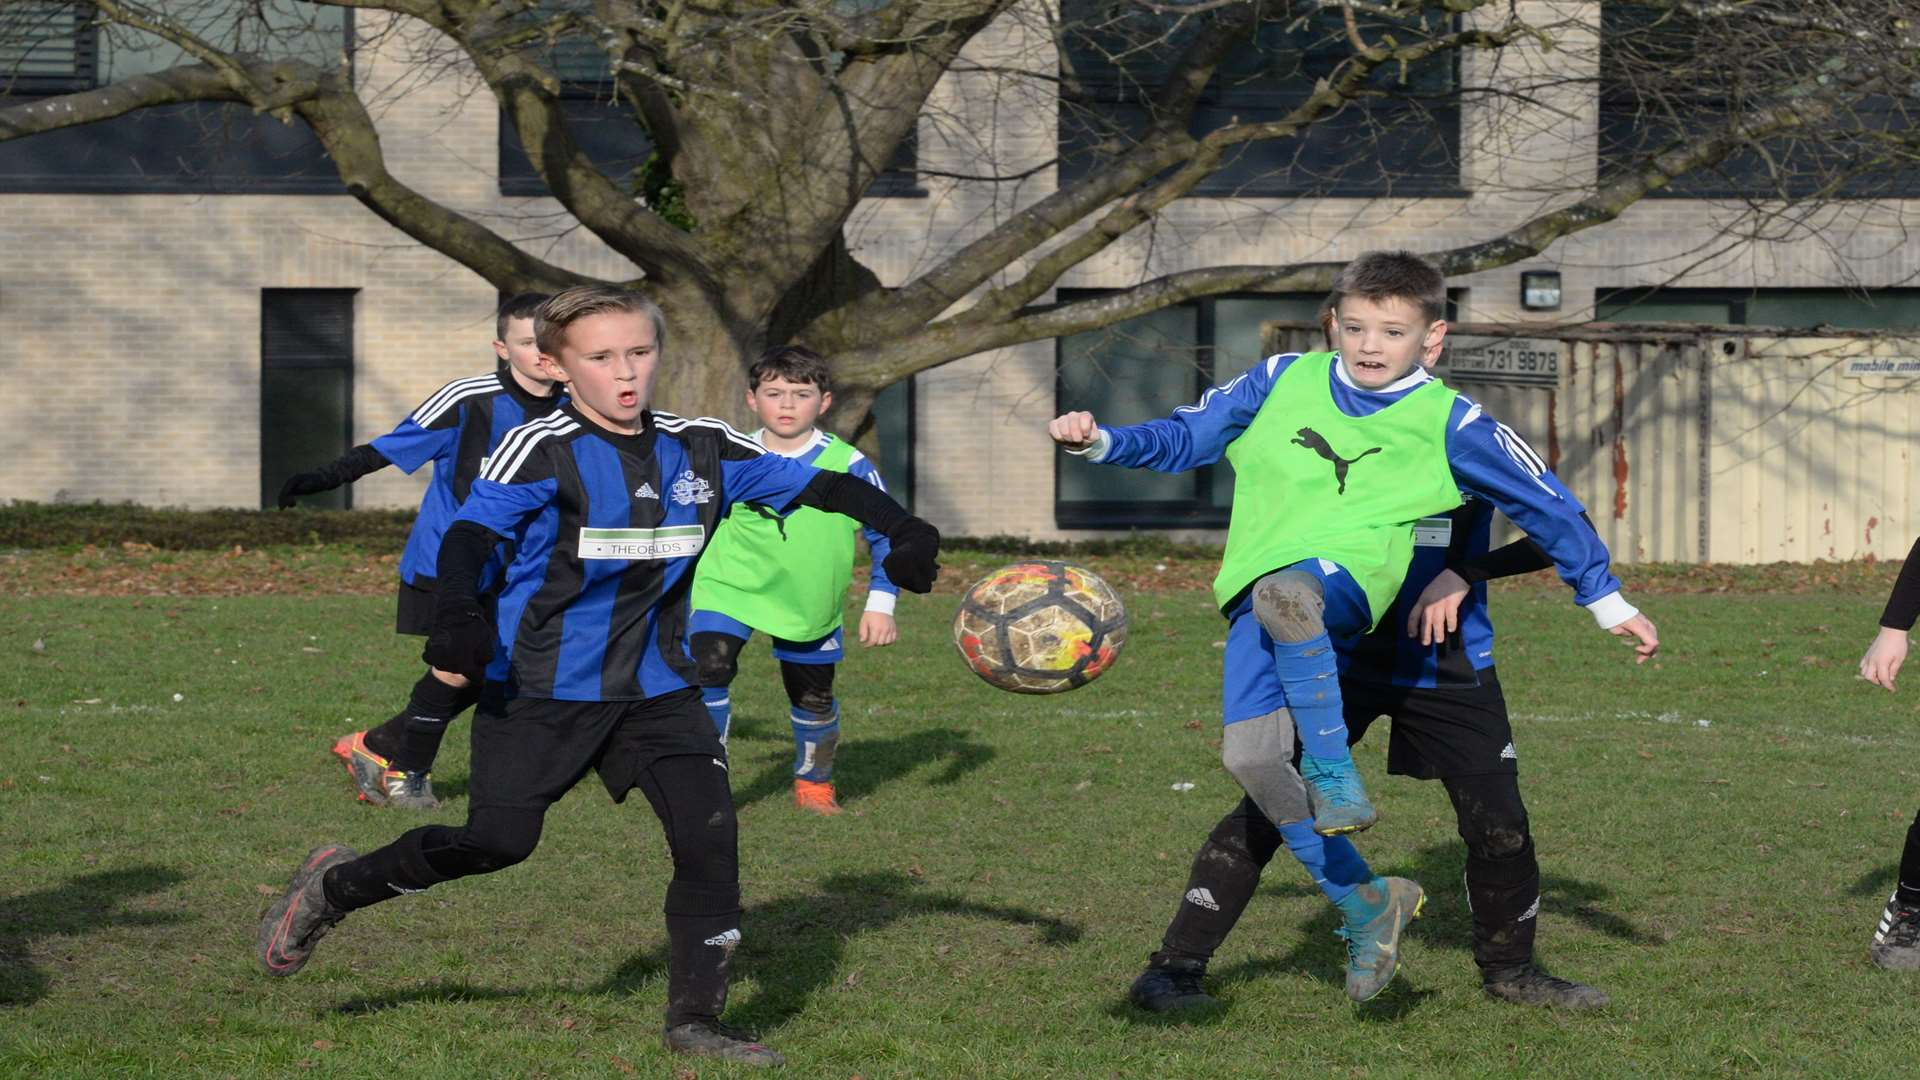 Under-10 sides Omega 92 Olympians and New Road battle it out Picture: Chris Davey